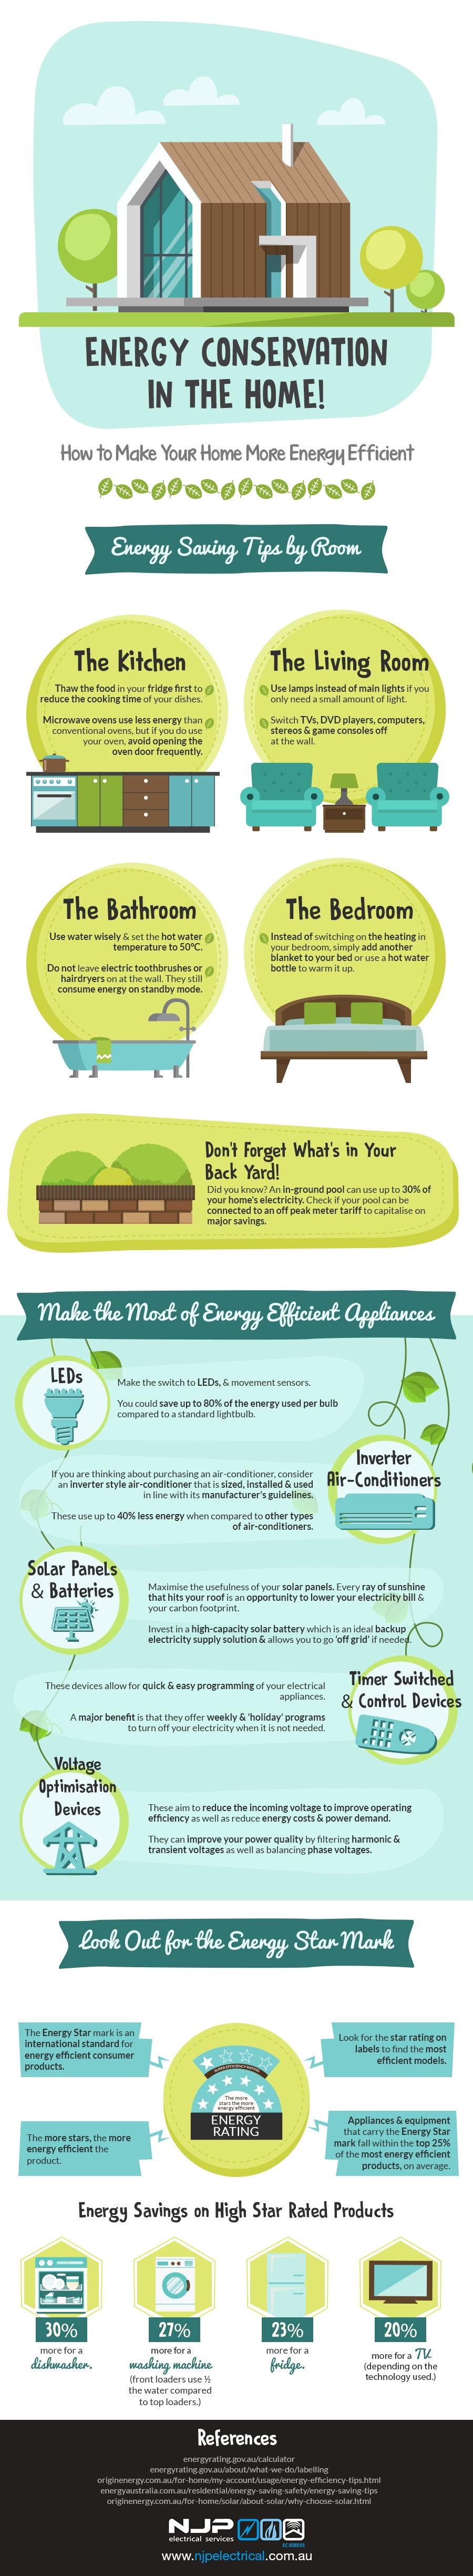 How to make your home more energy efficient dream green diy for How to build an energy efficient home